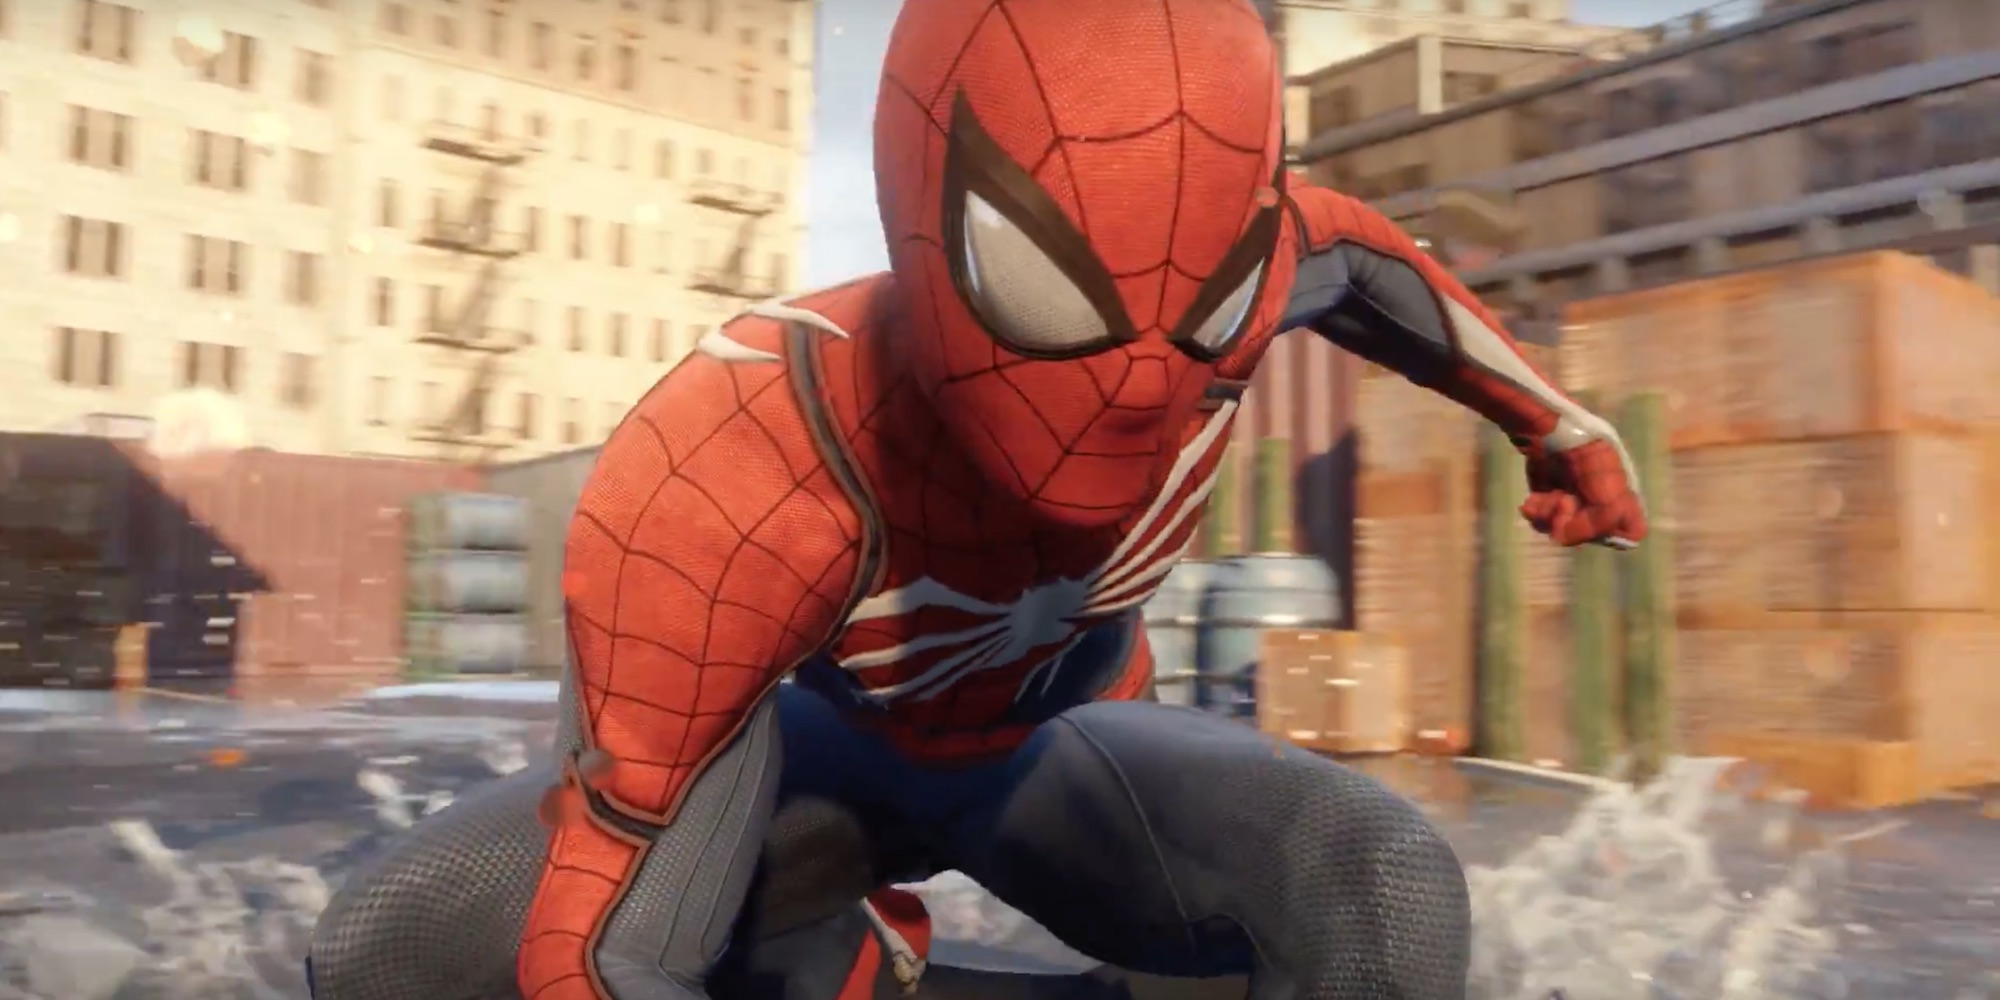 Sony-PS4-Spider-Man-Game-Insomniac-Games